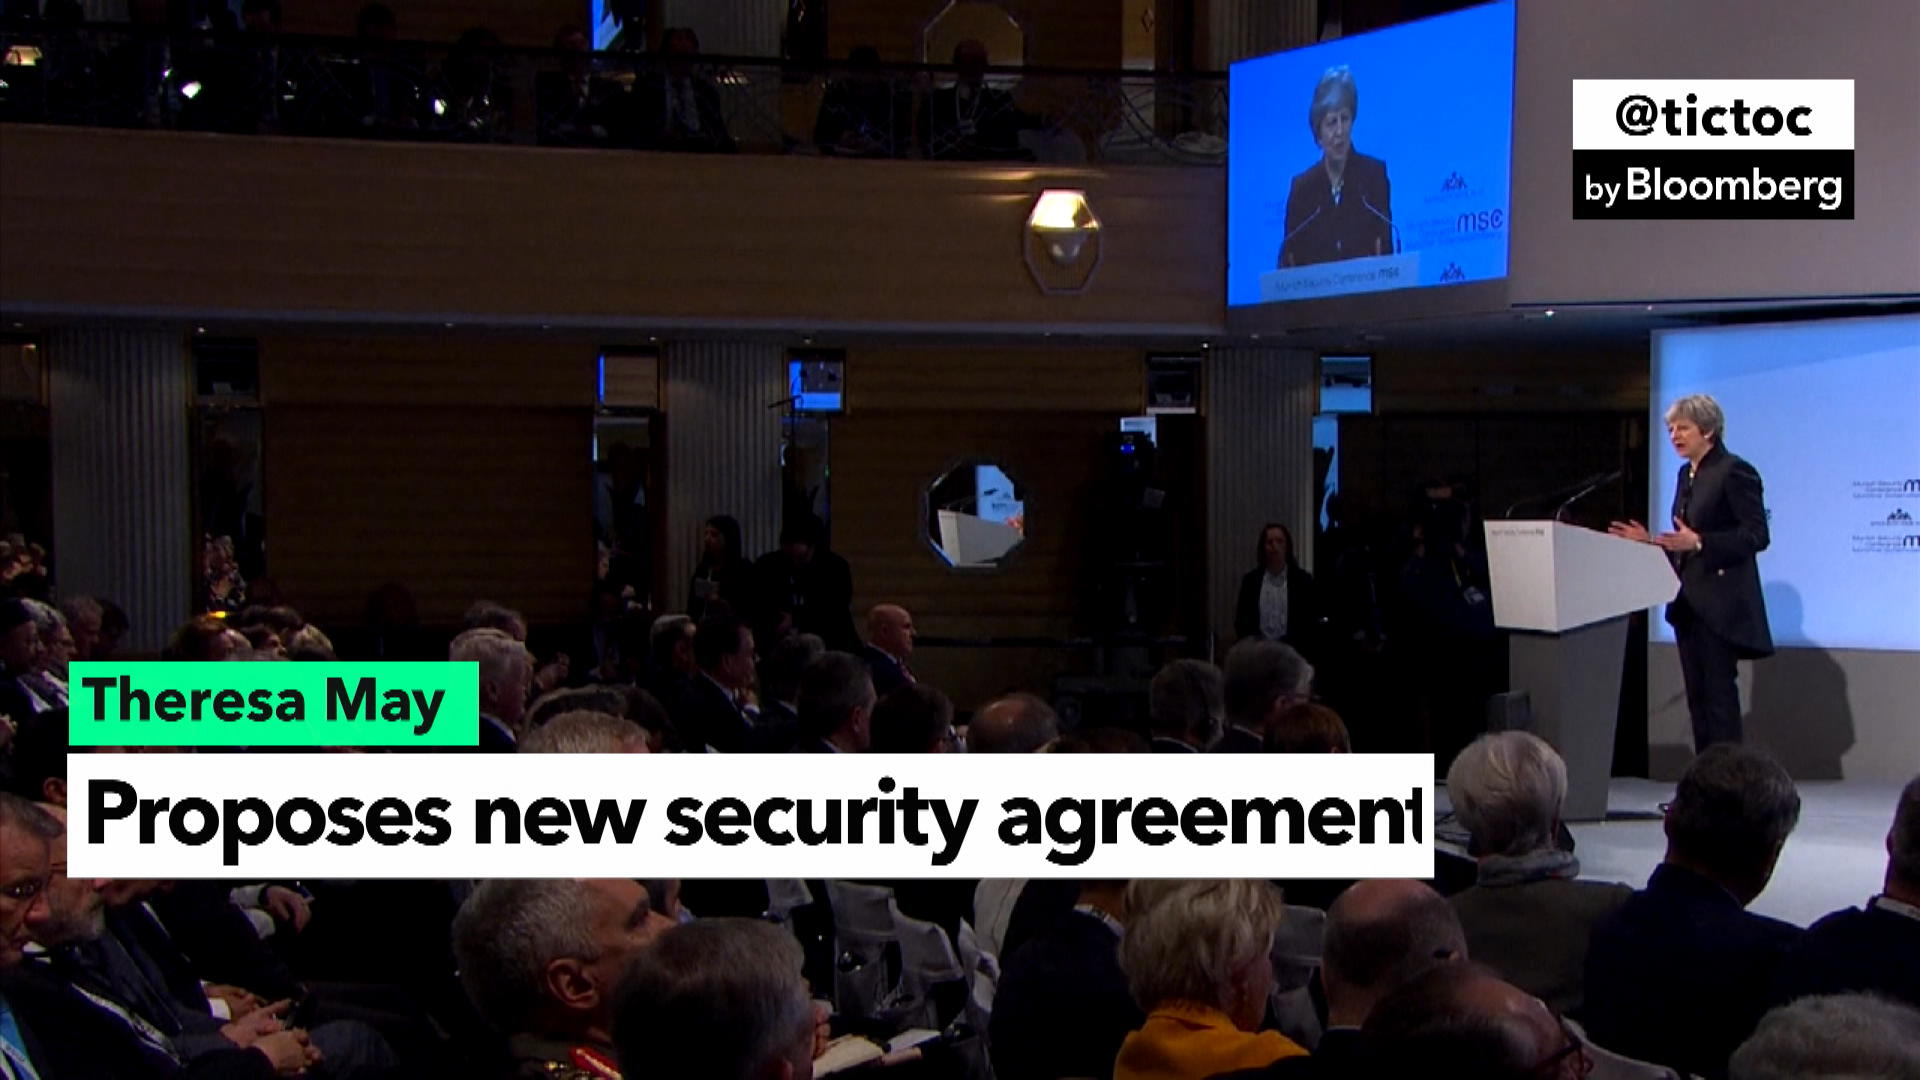 Theresa May proposes security agreement between UK and EU